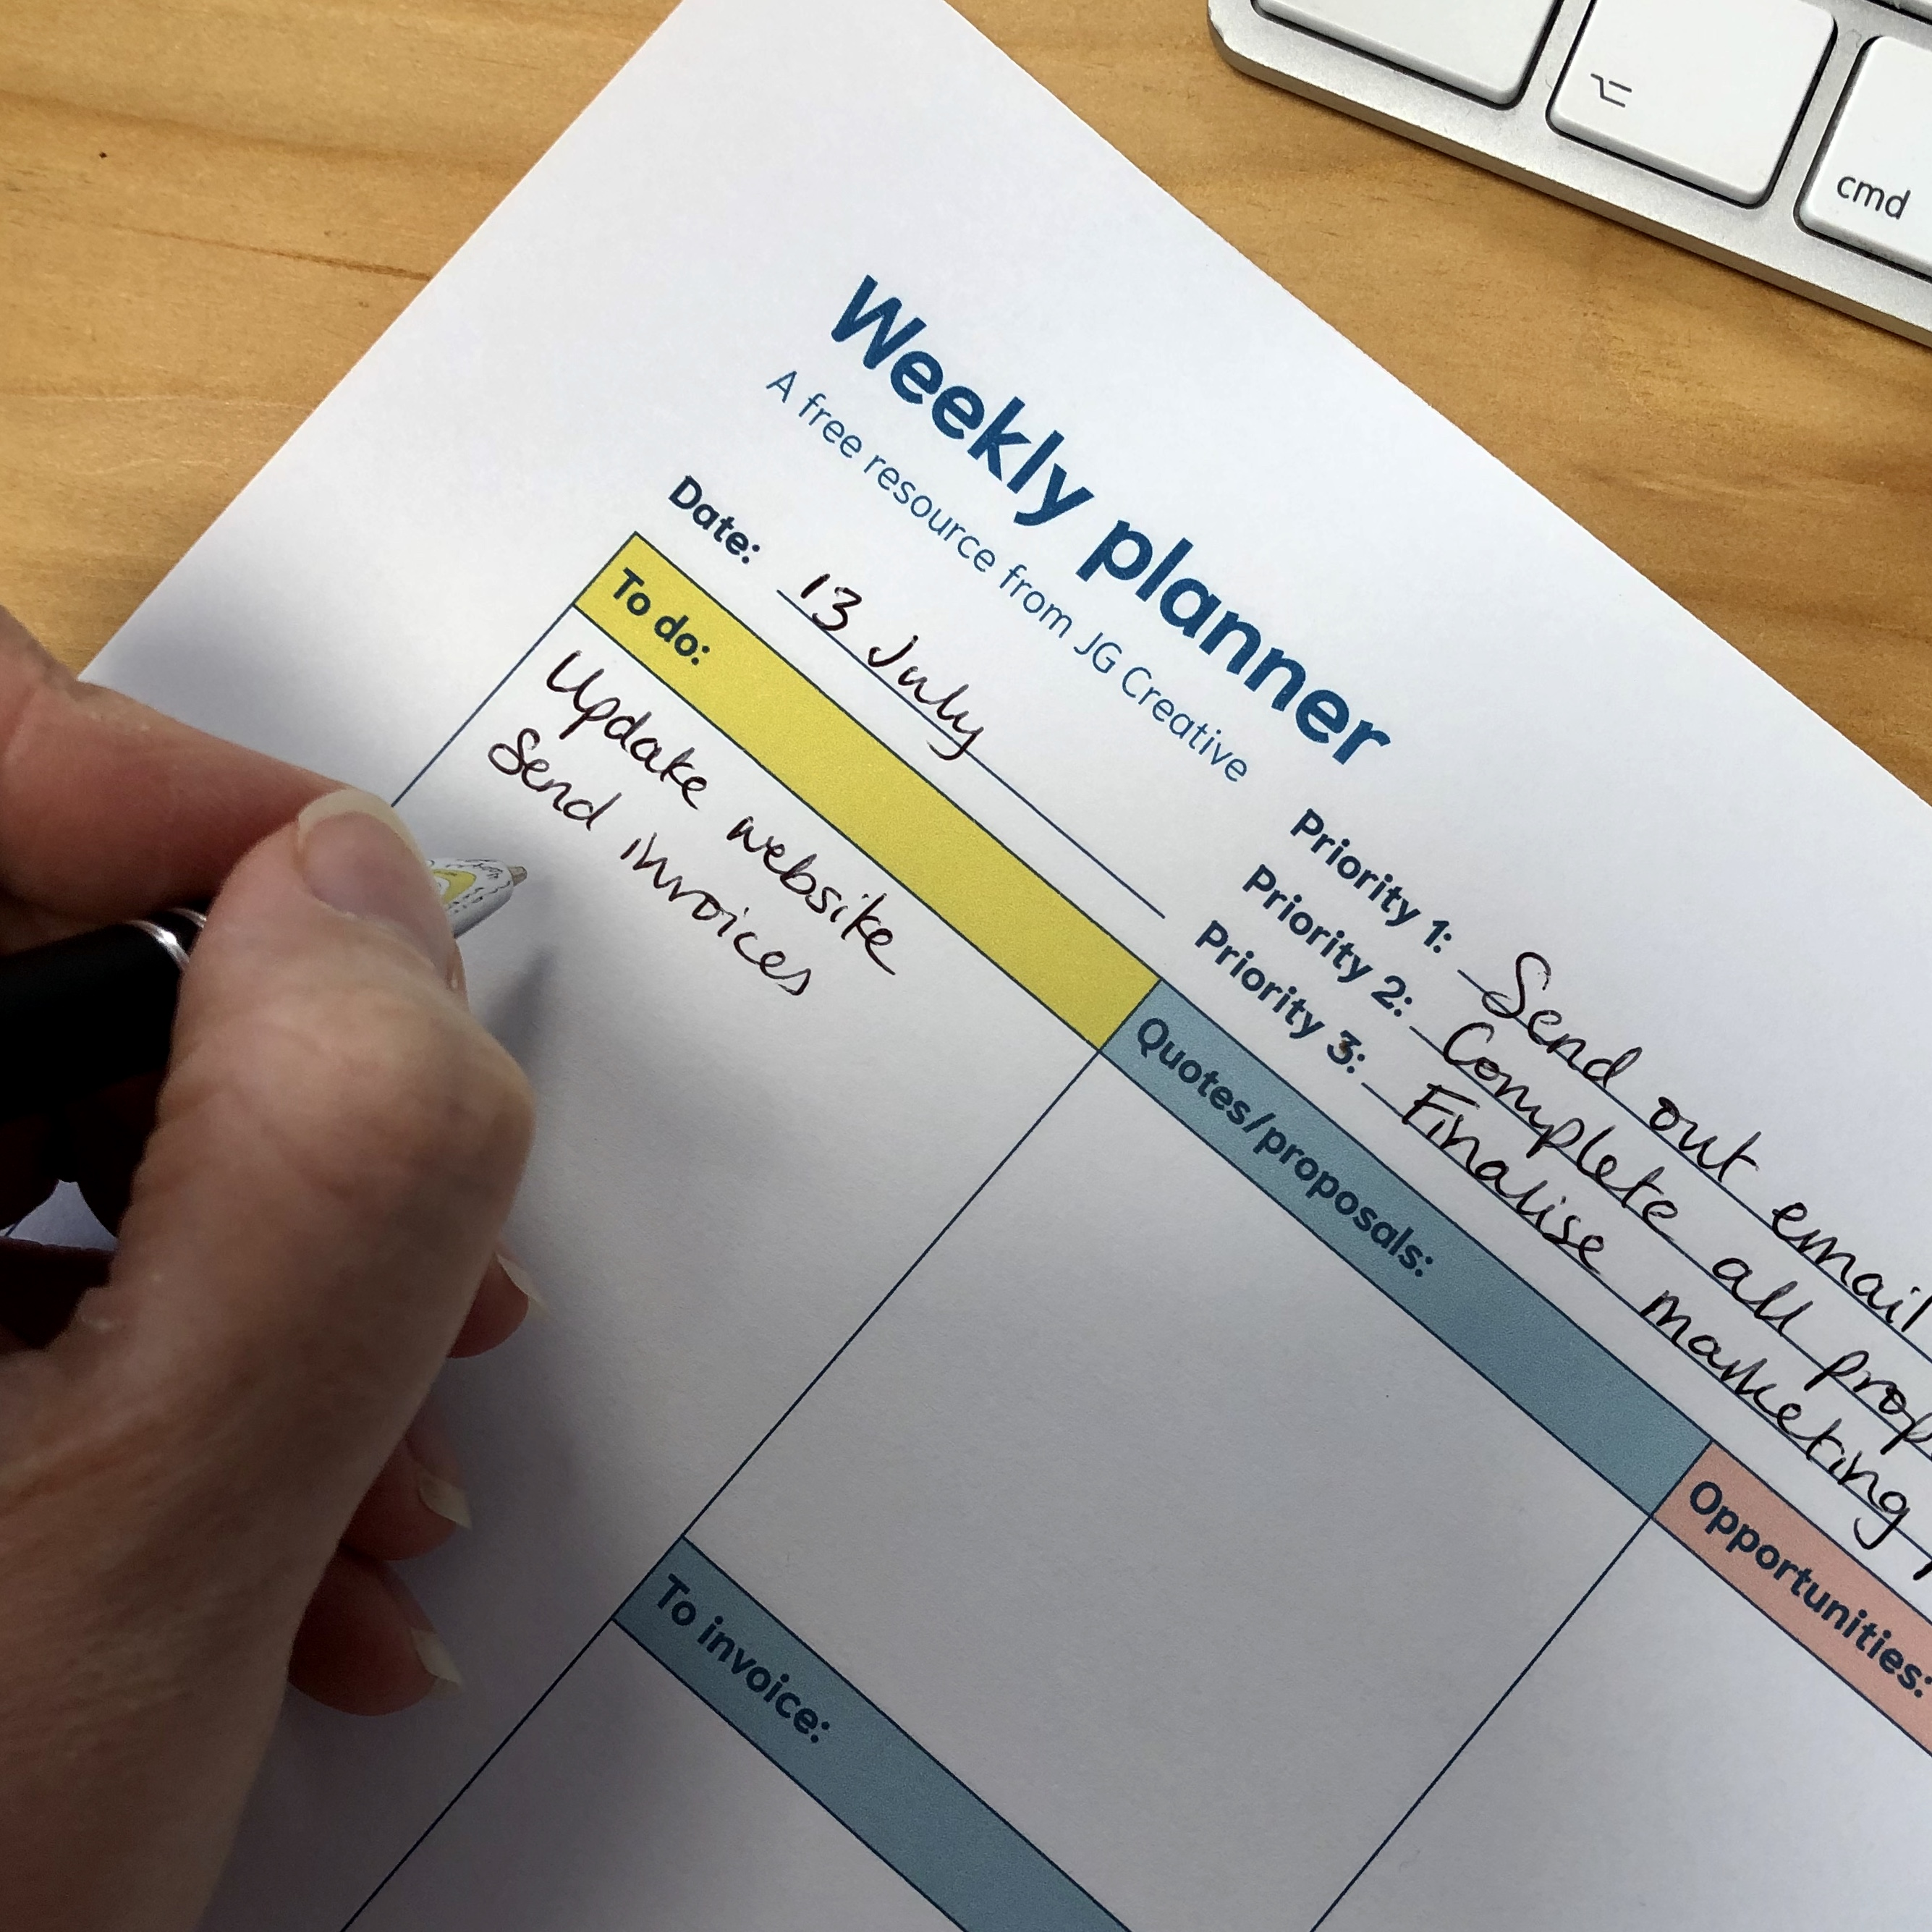 Image of a hand writing into the Weekly planner